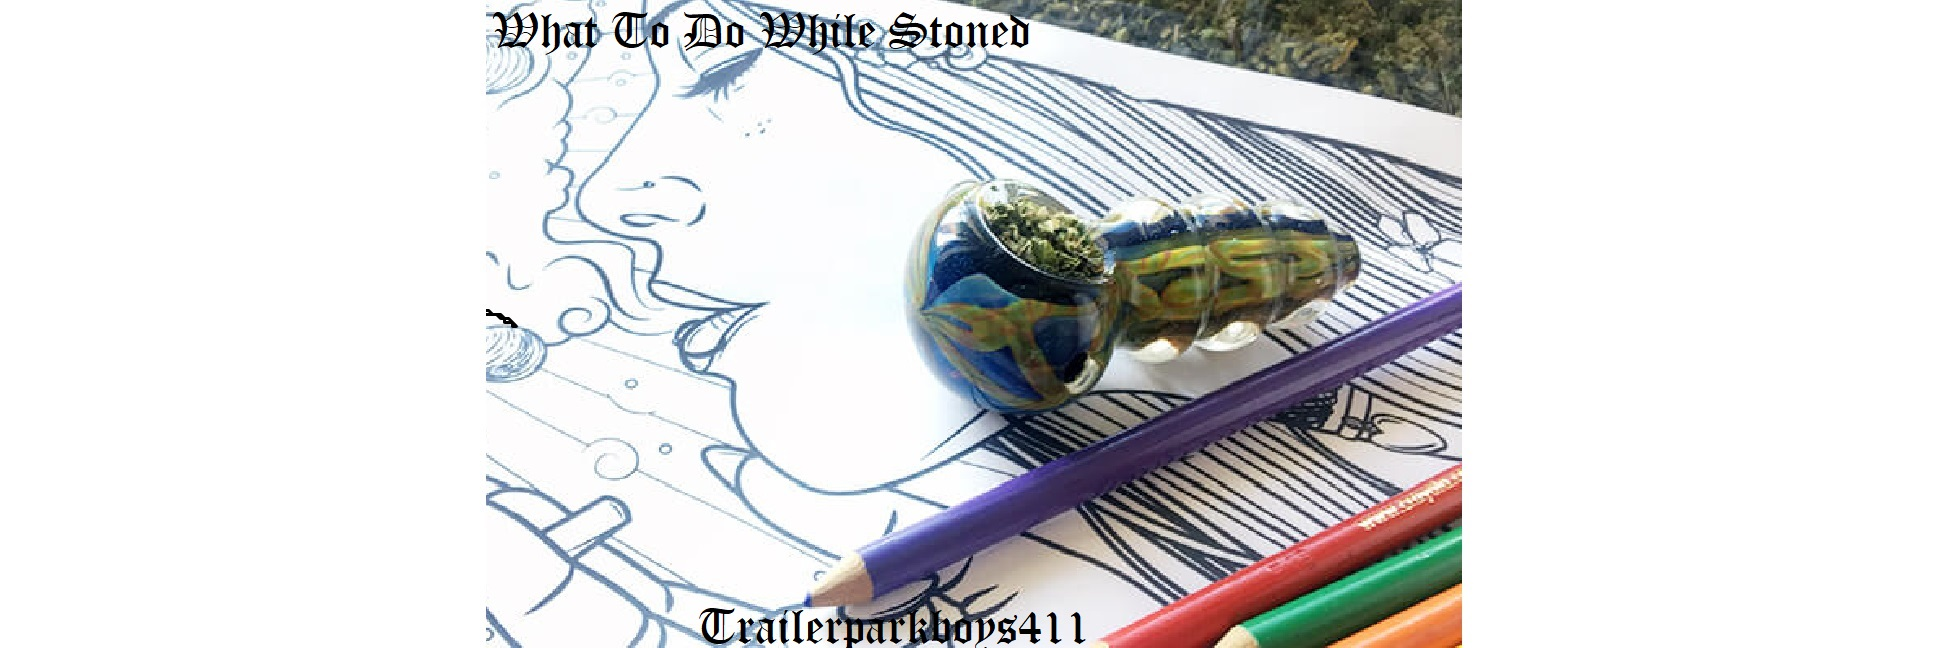 The Best Things To Do While Stoned